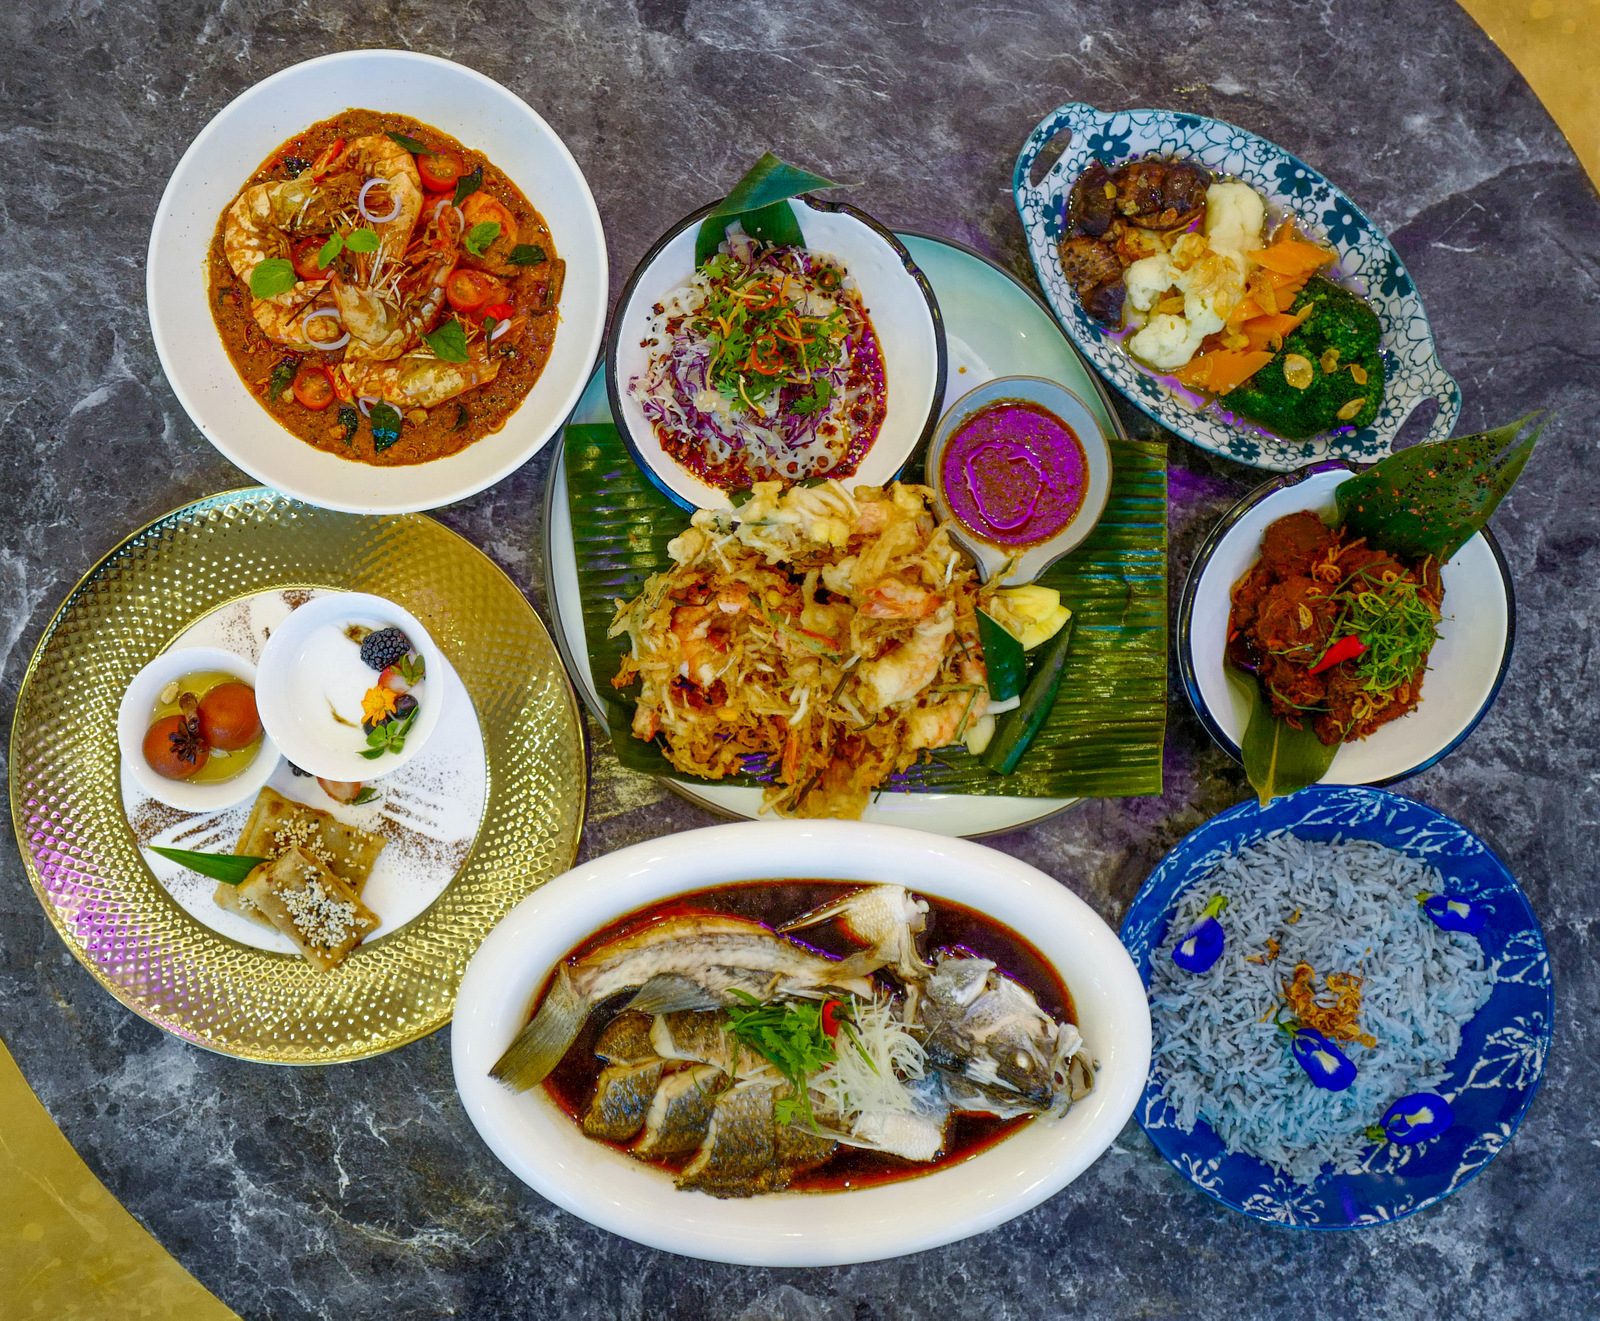 de.wan 1958 by chef wan: boss my unity menu brings malaysian flavours to the fore